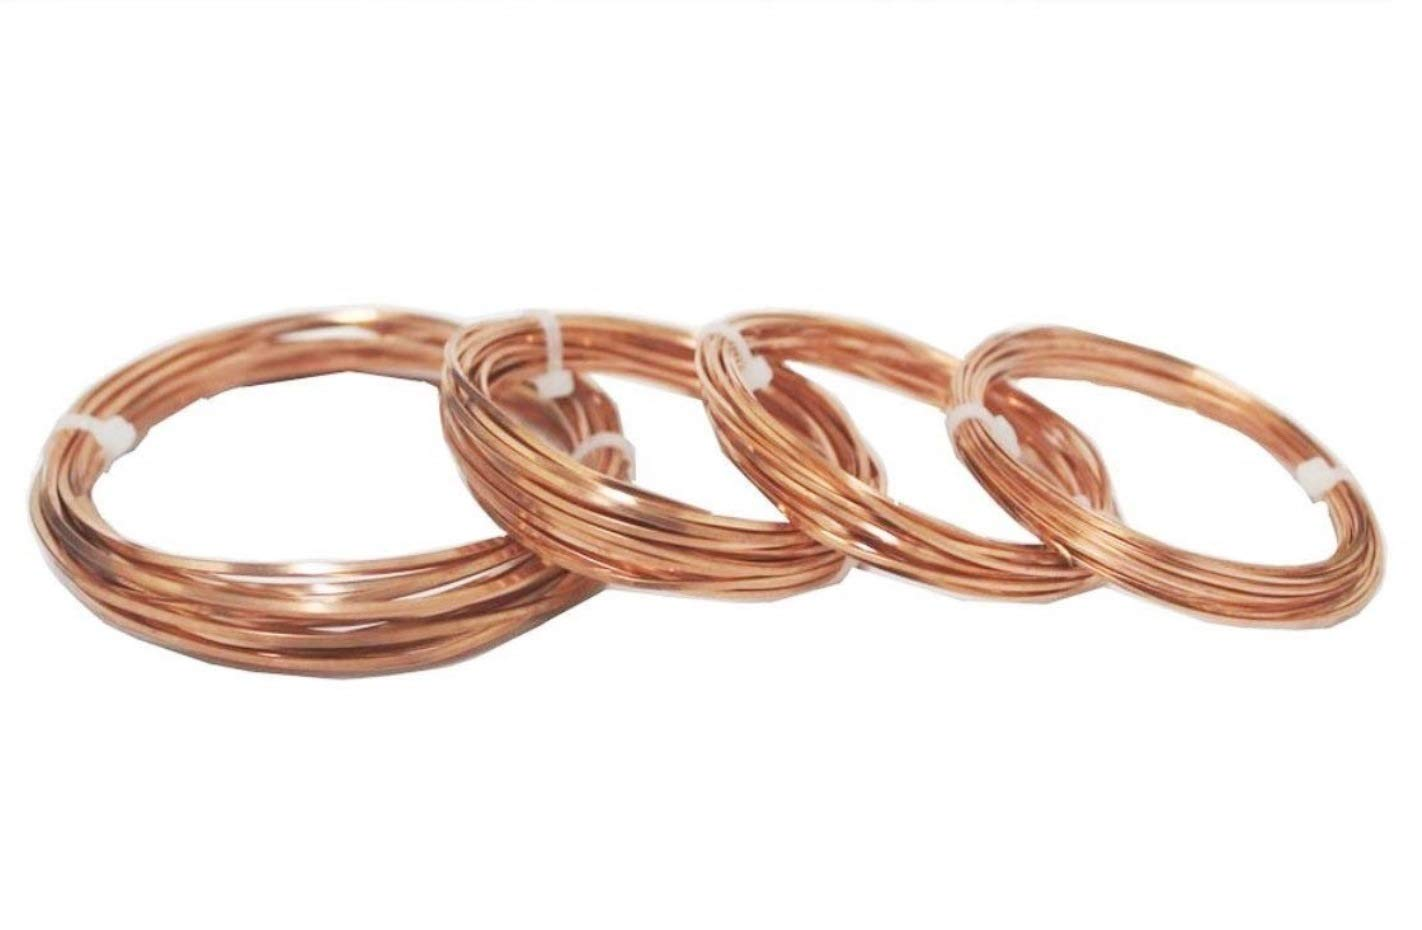 Modern Findings Assorted Square Copper Wire 10 Ft each size (Dead Soft) COPPER WIRE USA